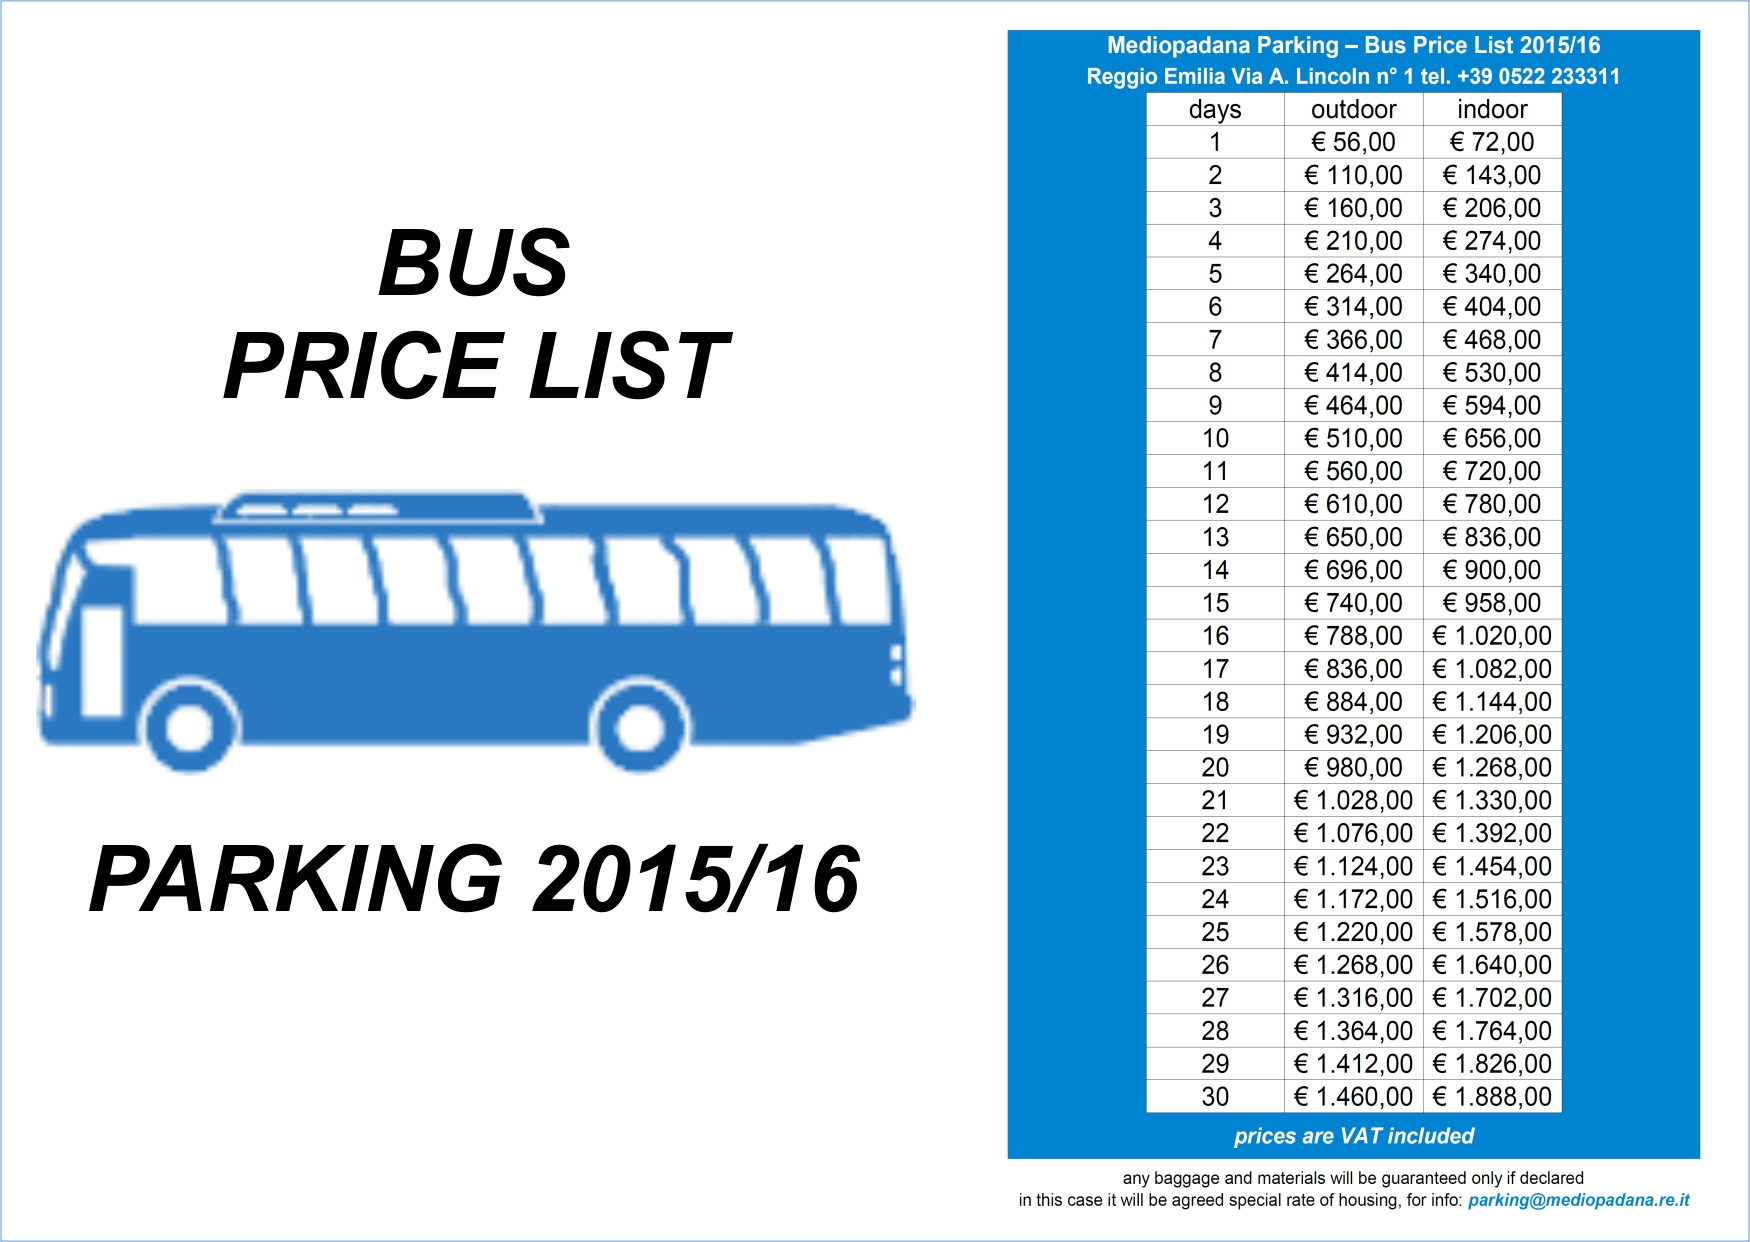 Mediopadana Parking - Price List 2015/16